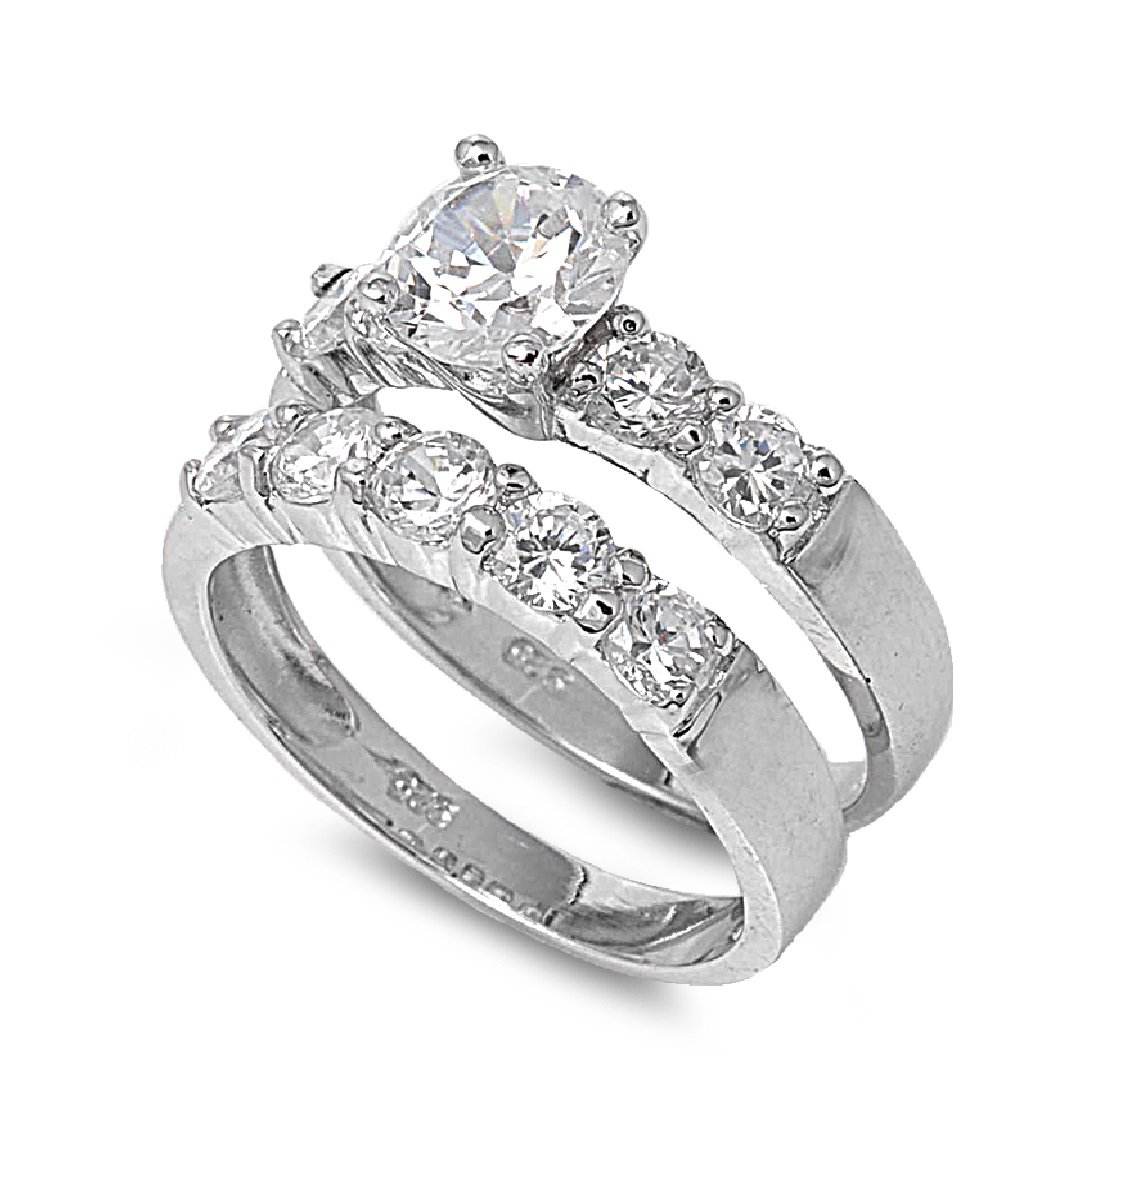 CloseoutWarehouse Round Center Cubic Zirconia Set of 2 Ring Sterling Silver Size 13